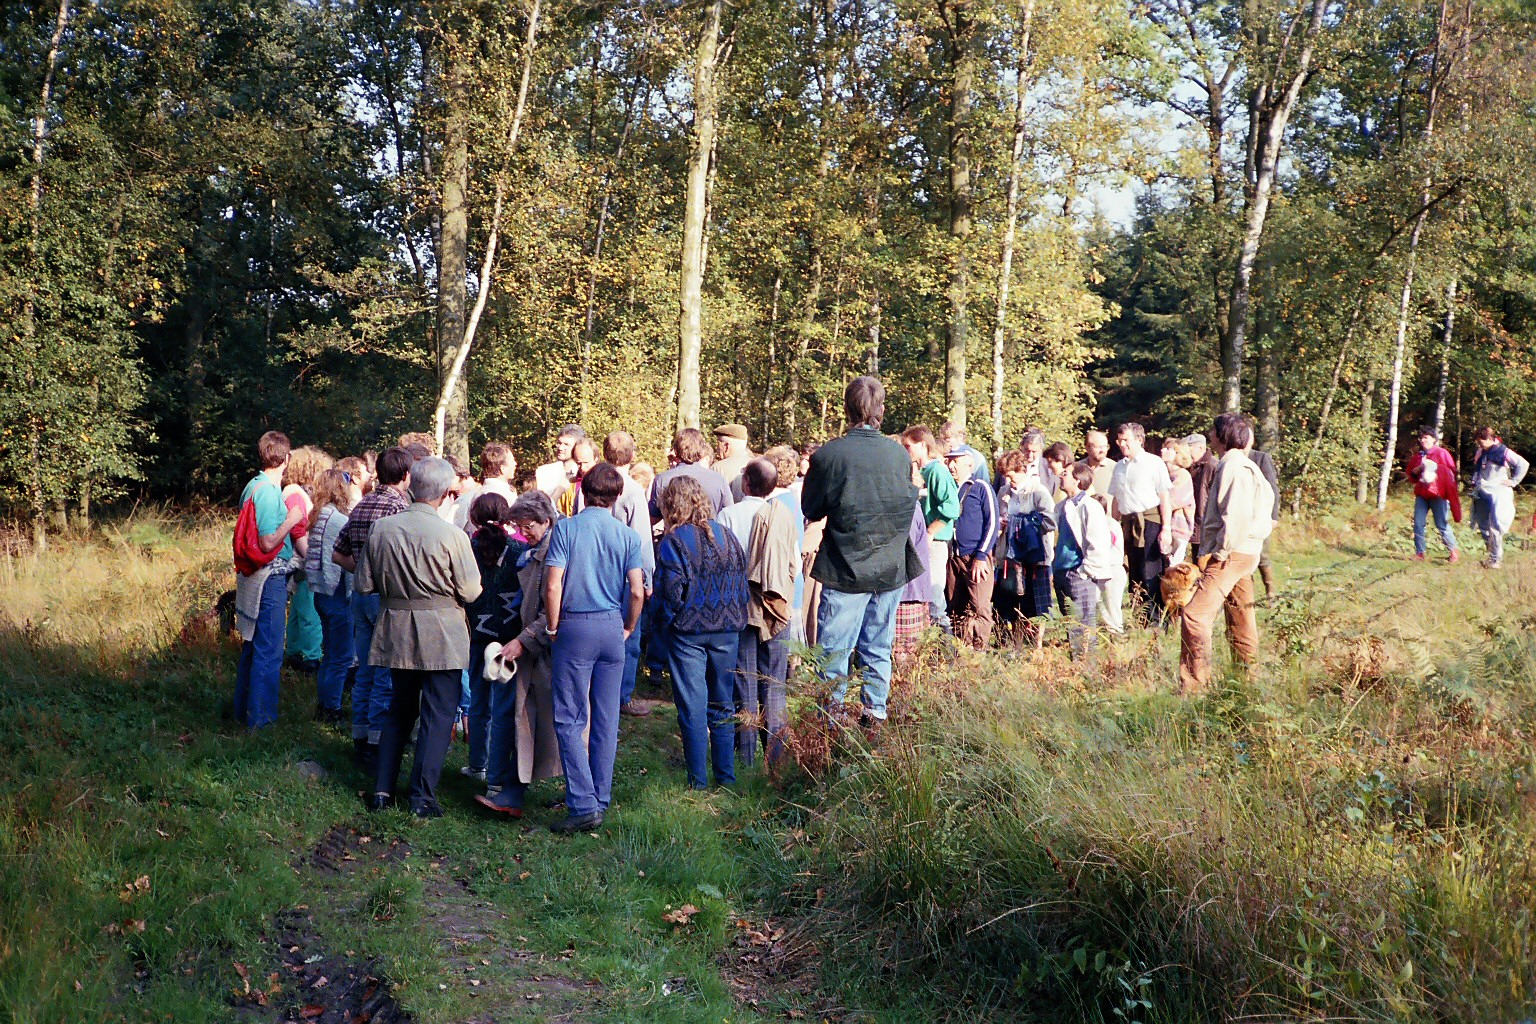 Begehung wegen Center Parcs 1988